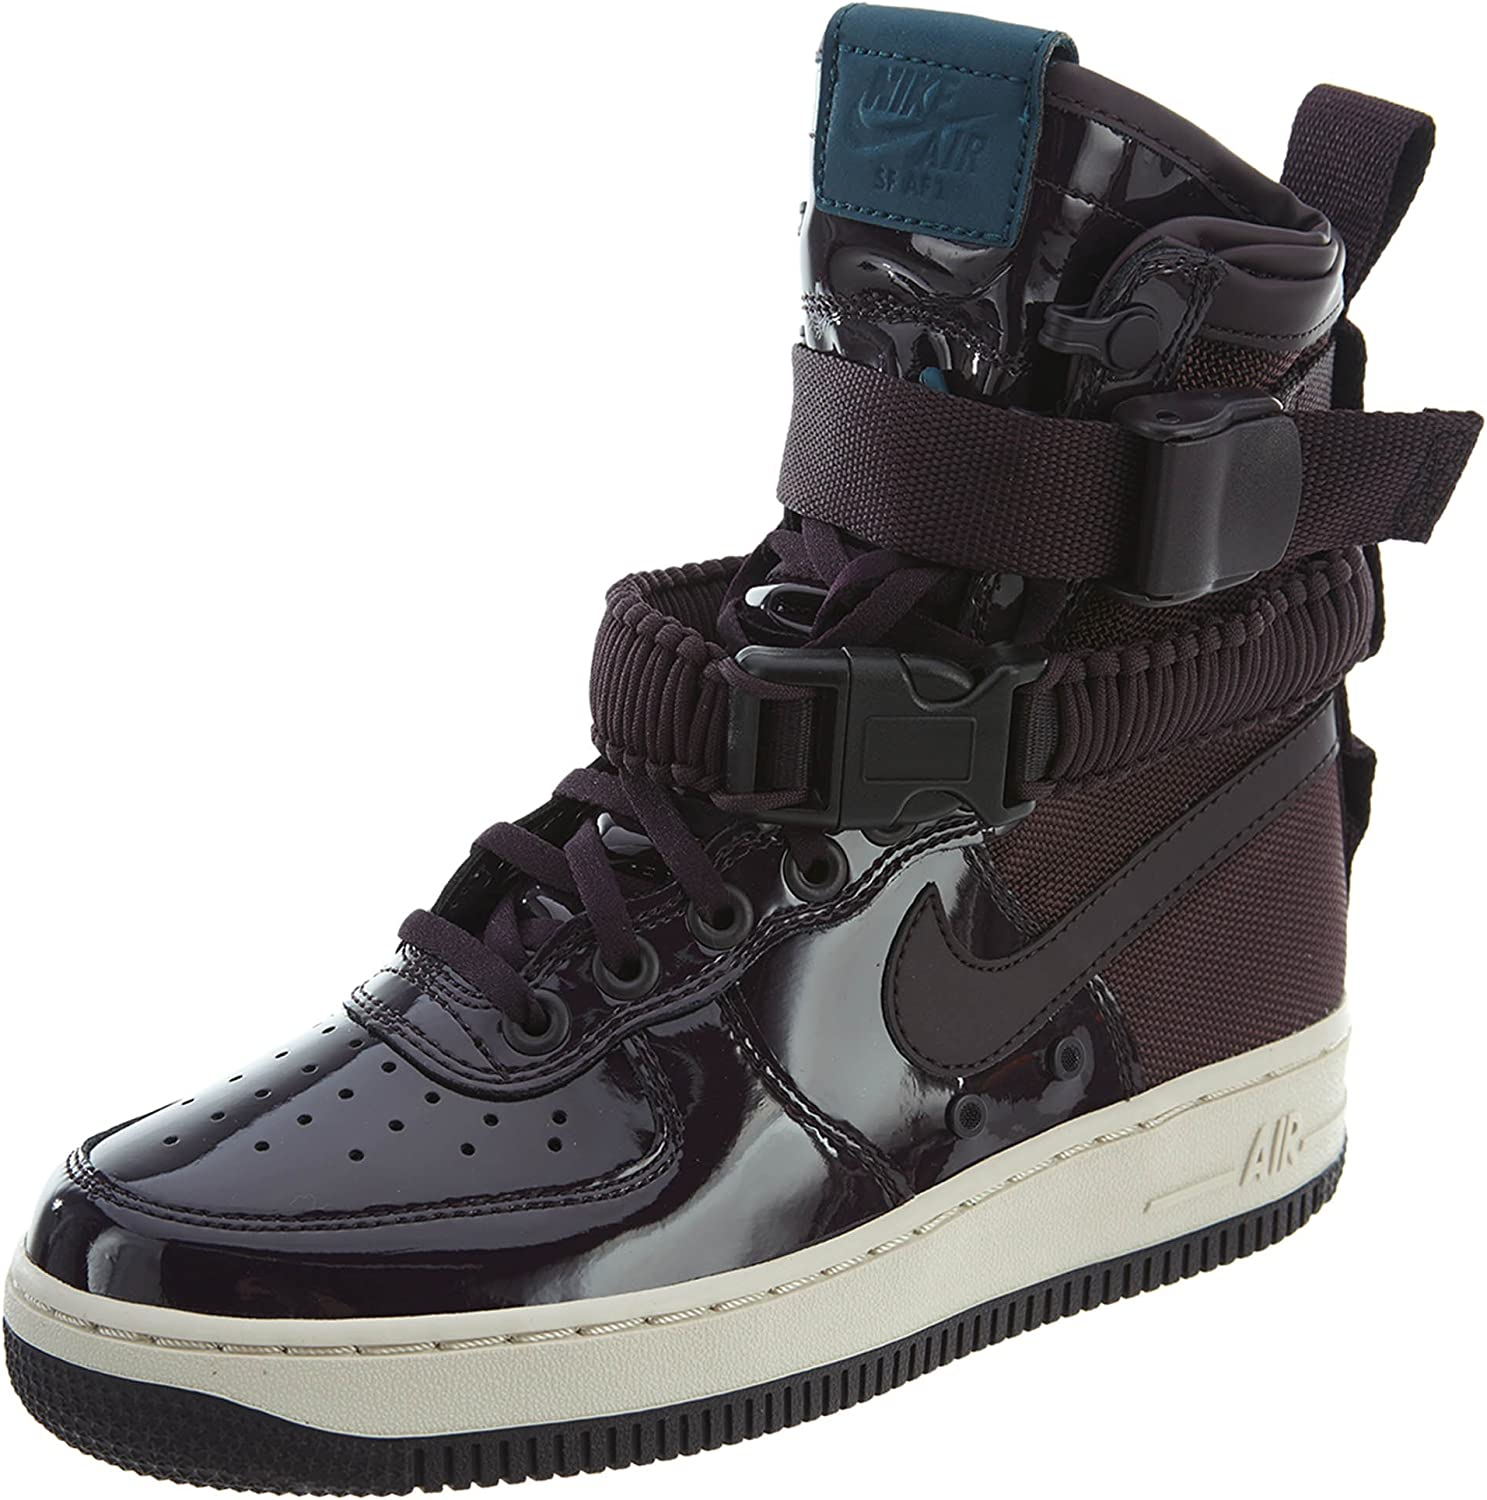 new nike air force one boots